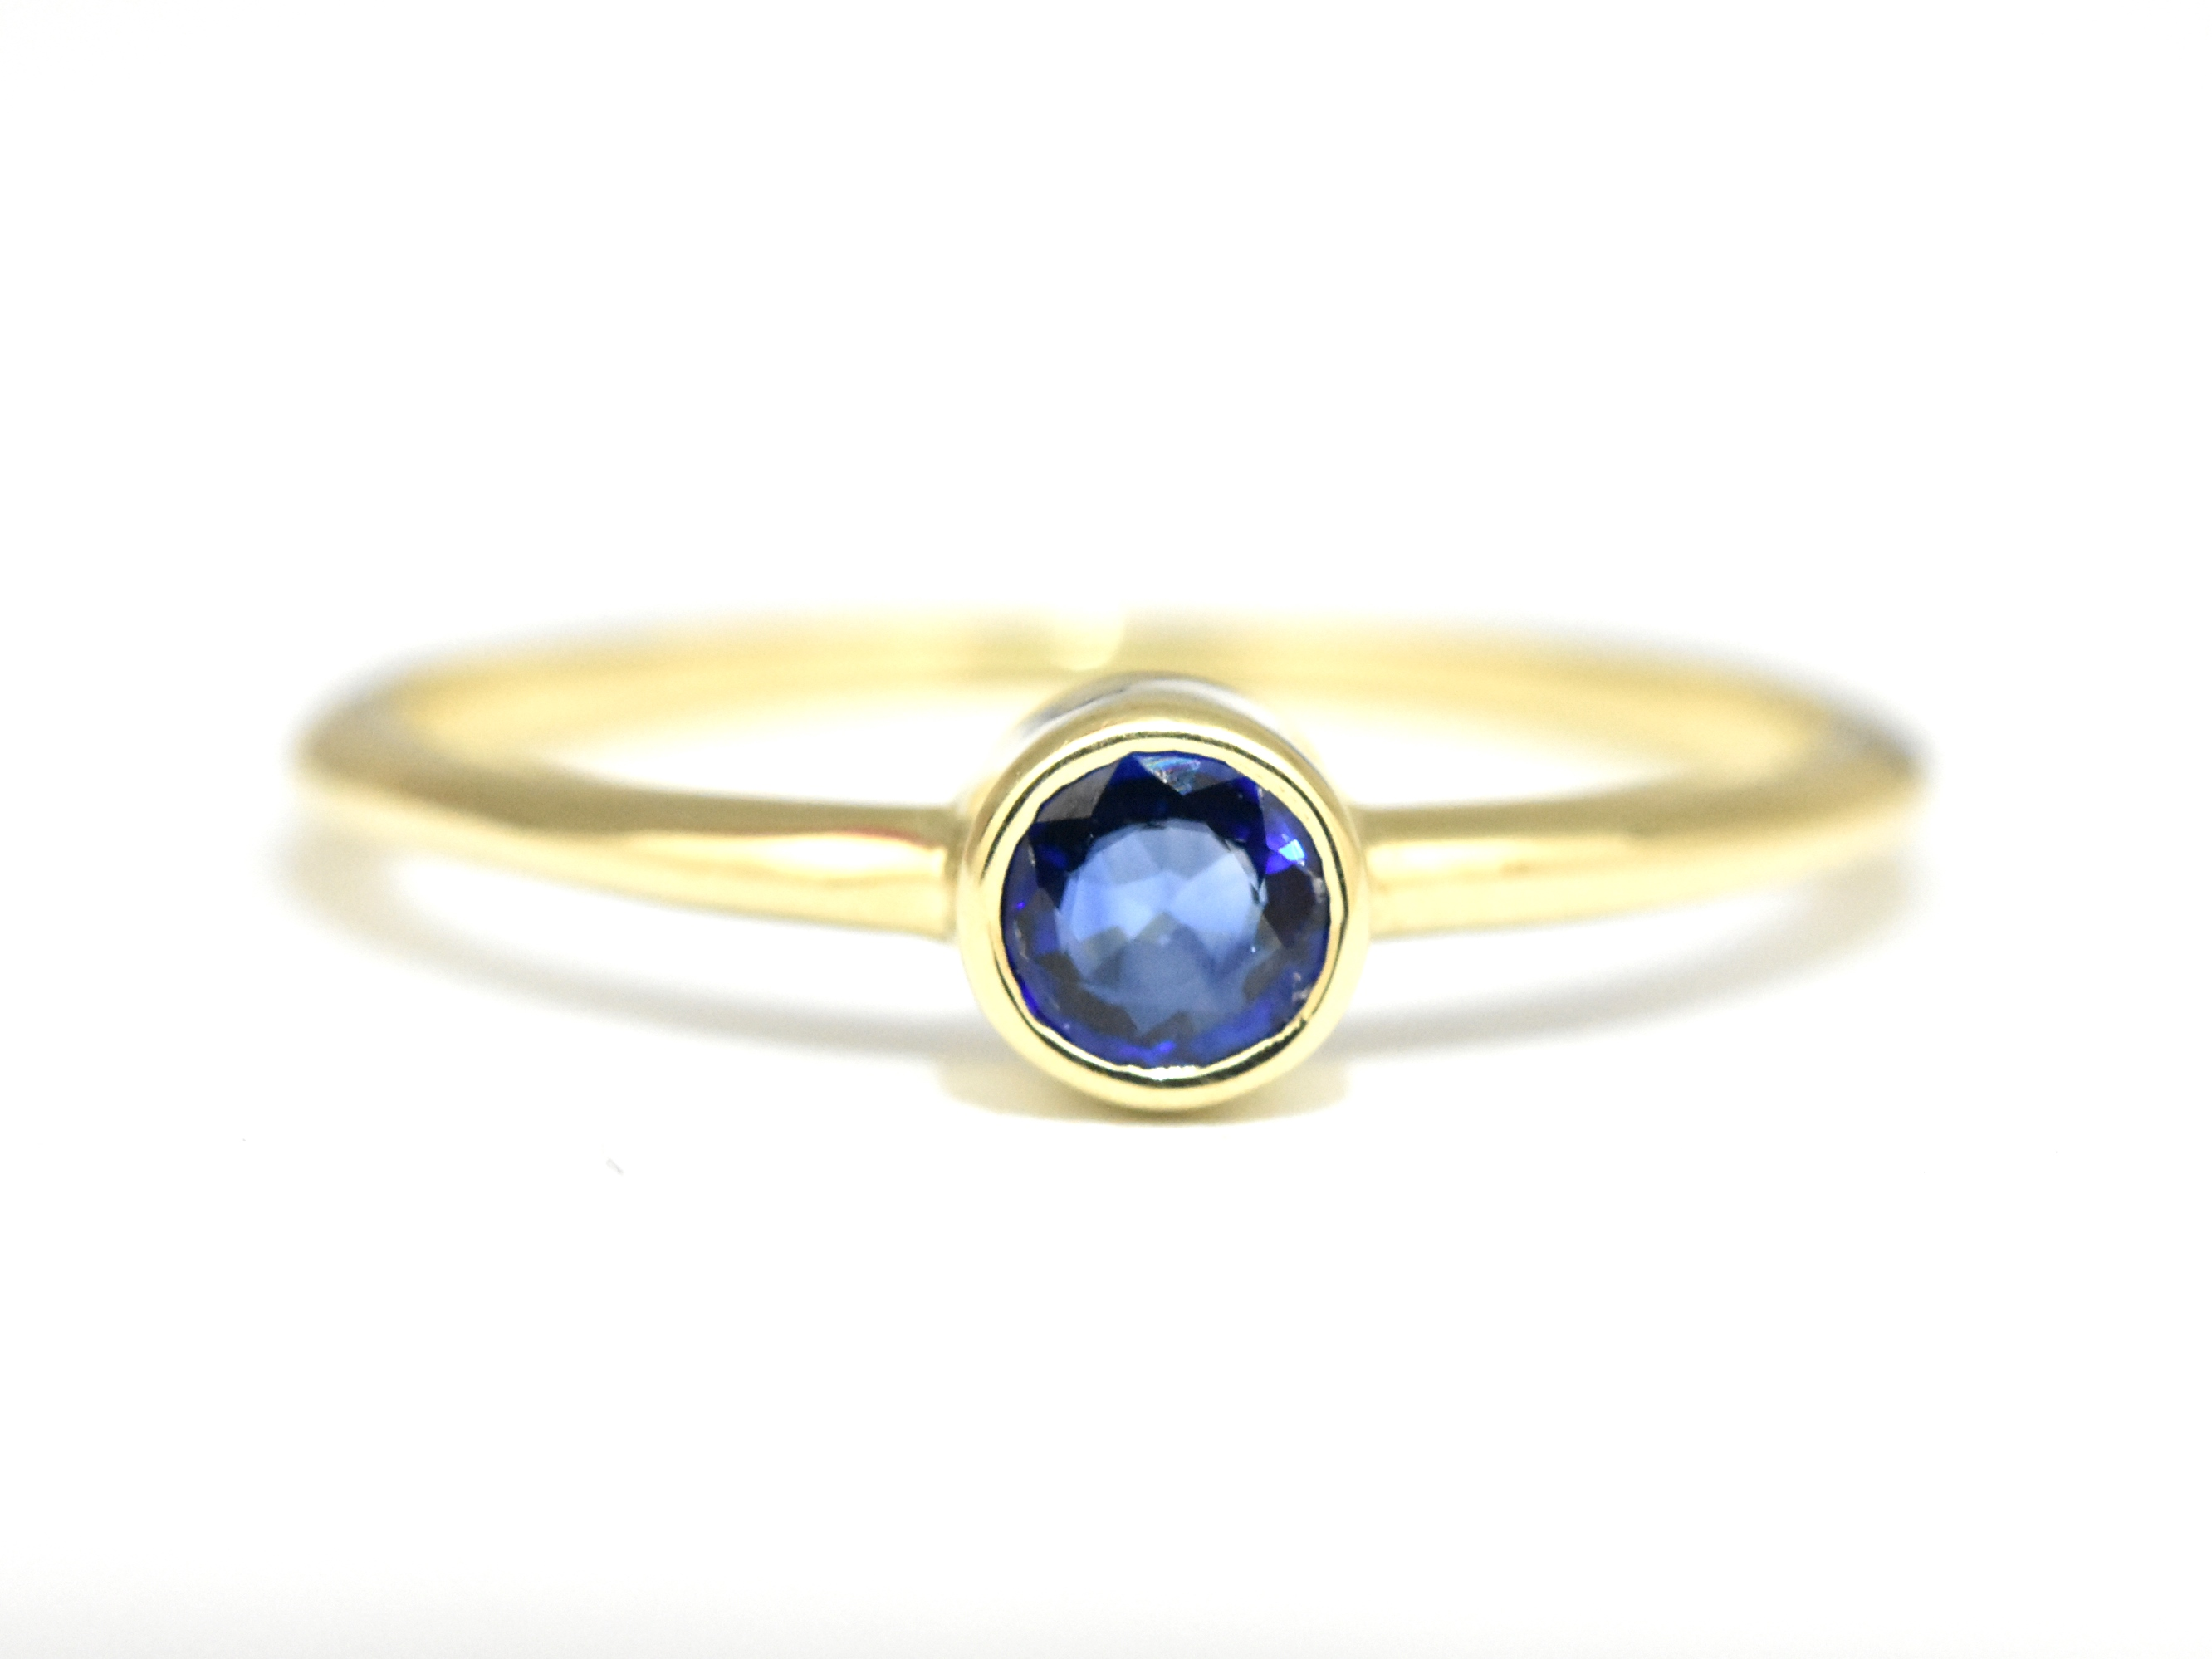 sku rings ring all price wholesale wedding sapphire sapphires oval royal buy top blue joan fine engagement